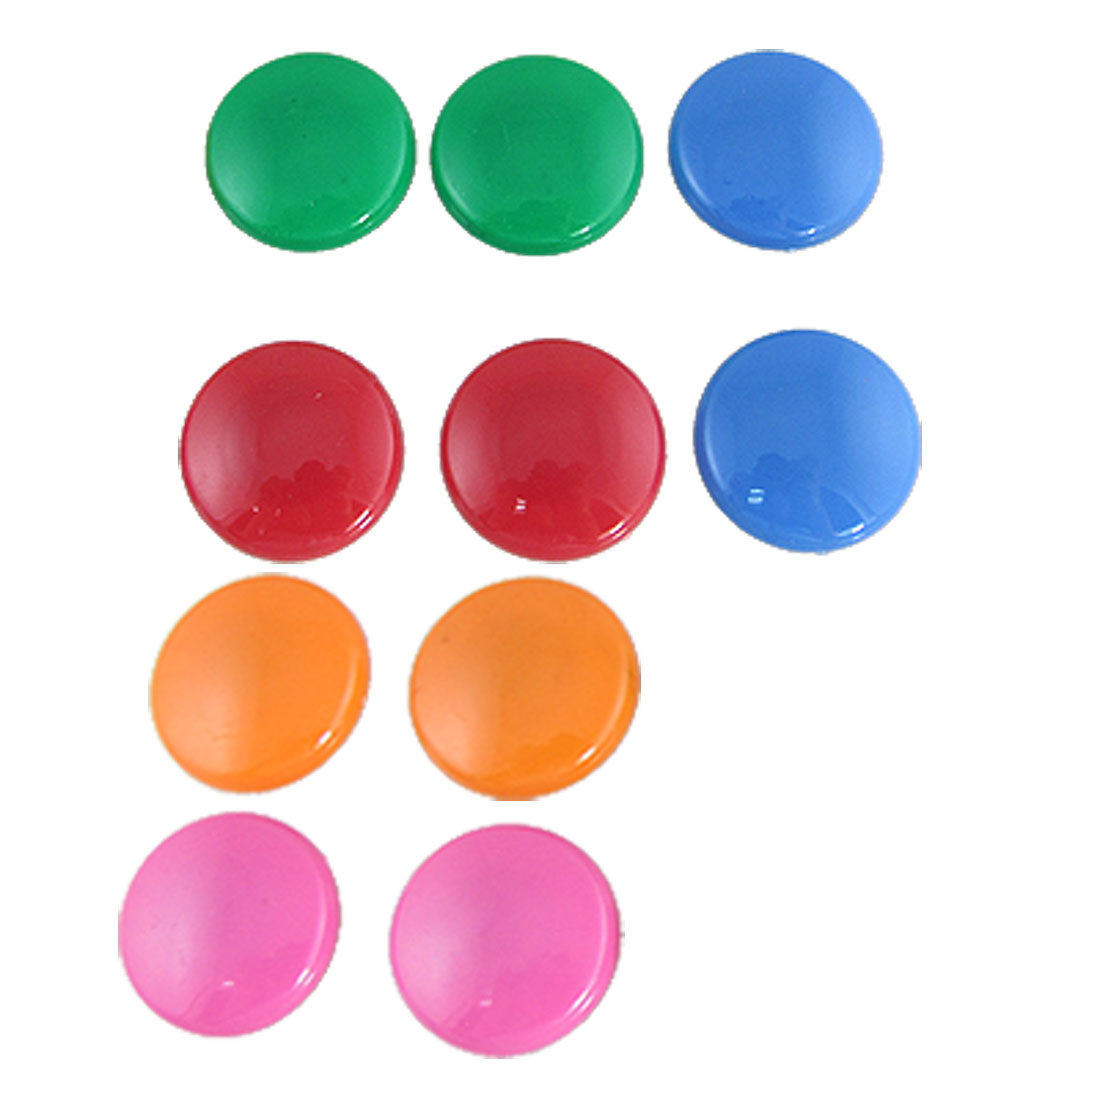 10 Pcs 35mm Dia Round Plastic 5 Colors Refrigerator Magnets